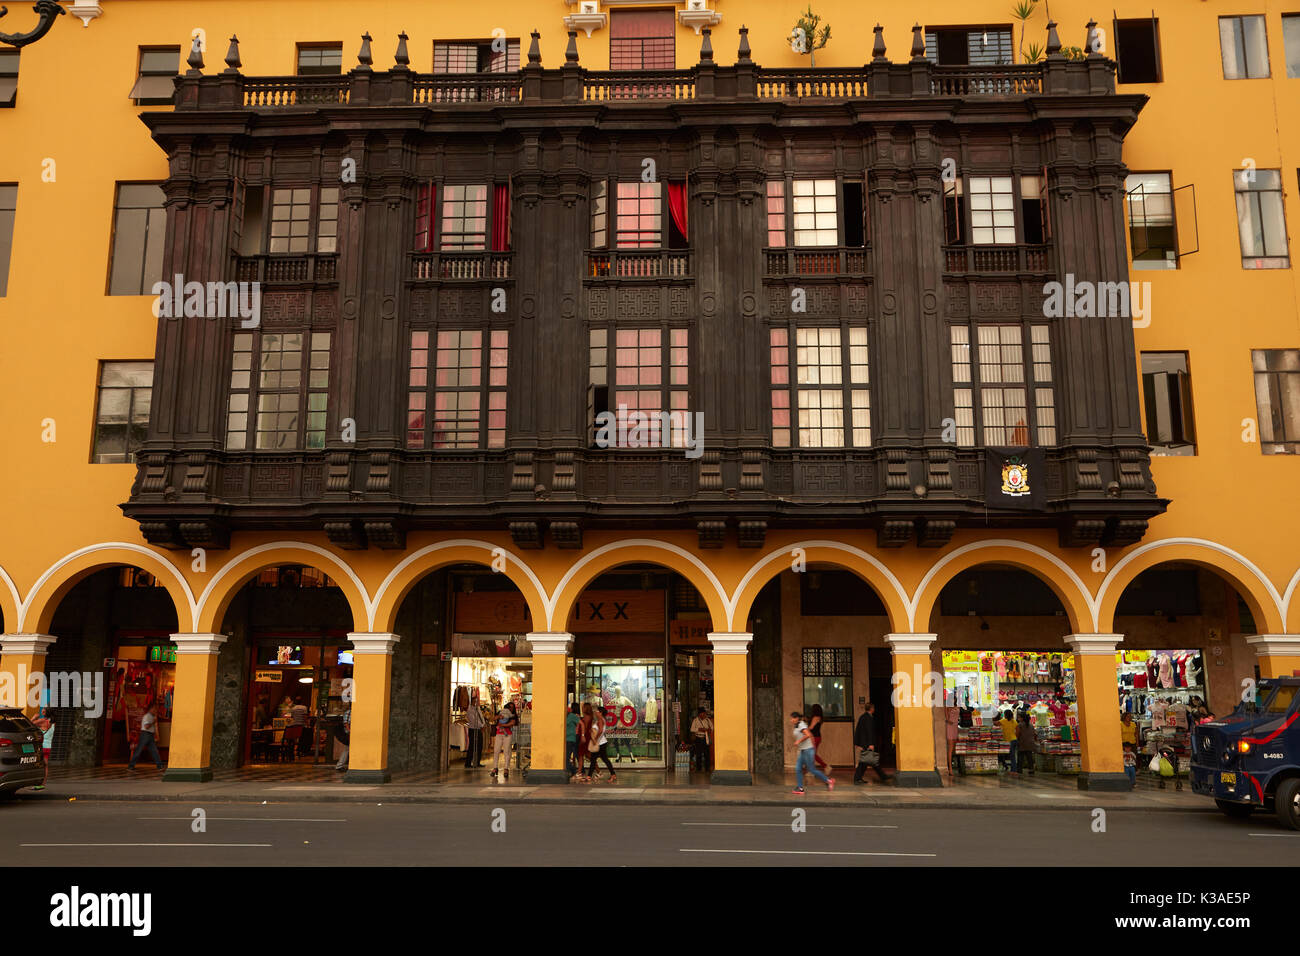 Ornate wooden balconies on historic building in Plaza Mayor, Historic centre of Lima (World Heritage Site), Peru, South America - Stock Image